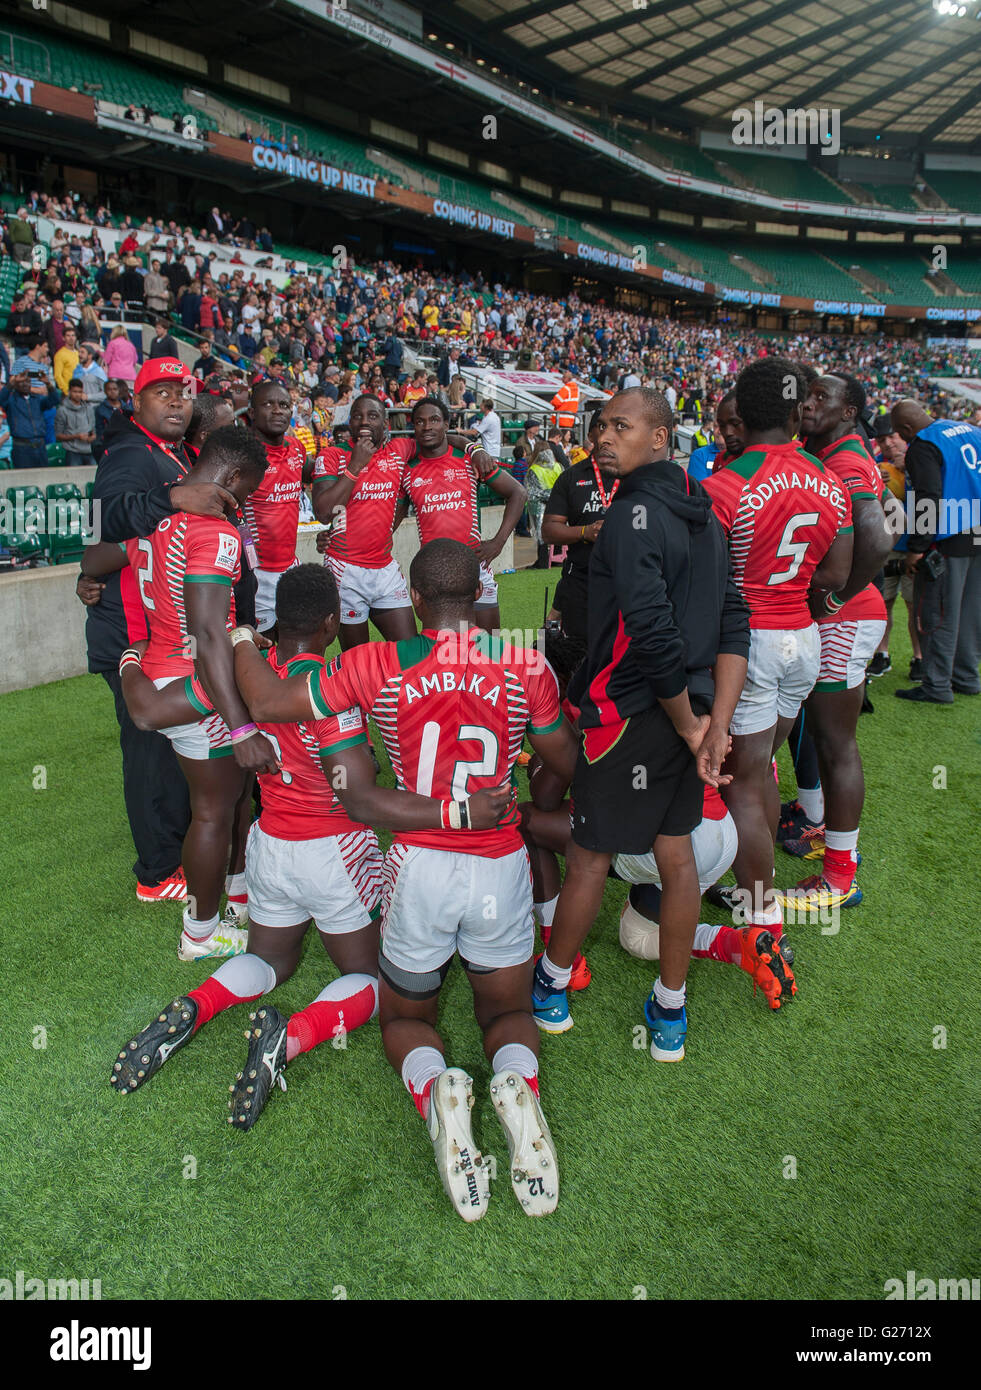 Twickenham Stadium 22nd May 2016. Kenya pray after winning the Sheild Final against Russia during day two of the - Stock Image